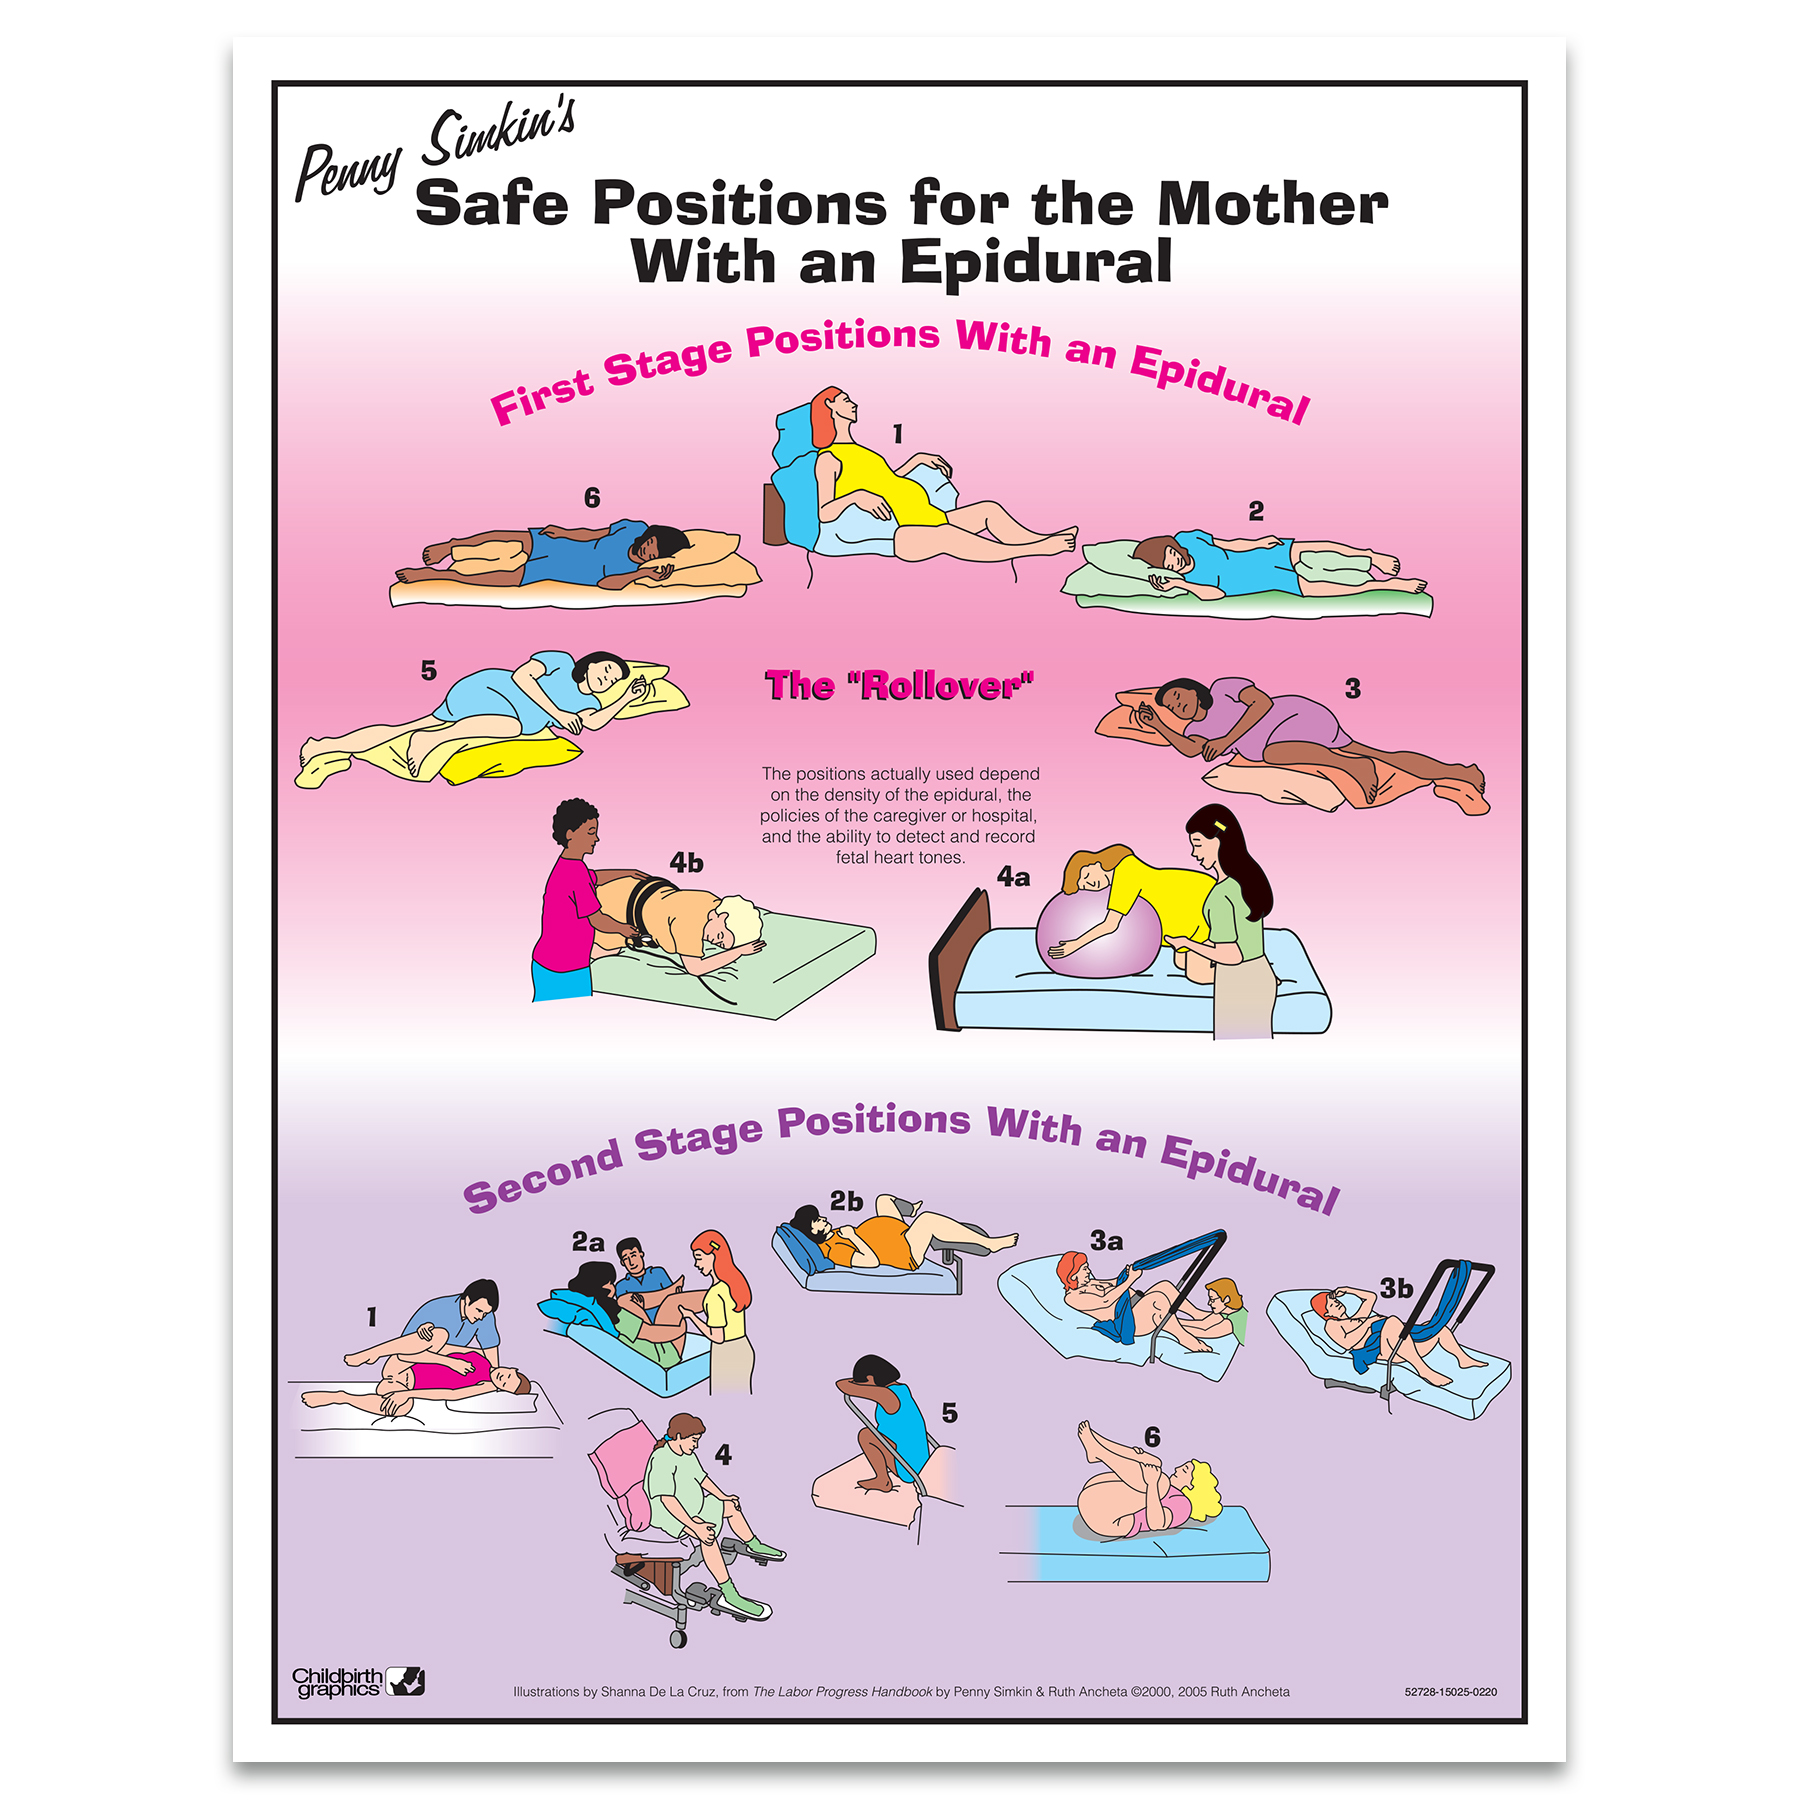 Penny Simkin's Safe Labor Positions with an Epidural full-color illustrated tear pad, 2 stages Childbirth Graphics 52728